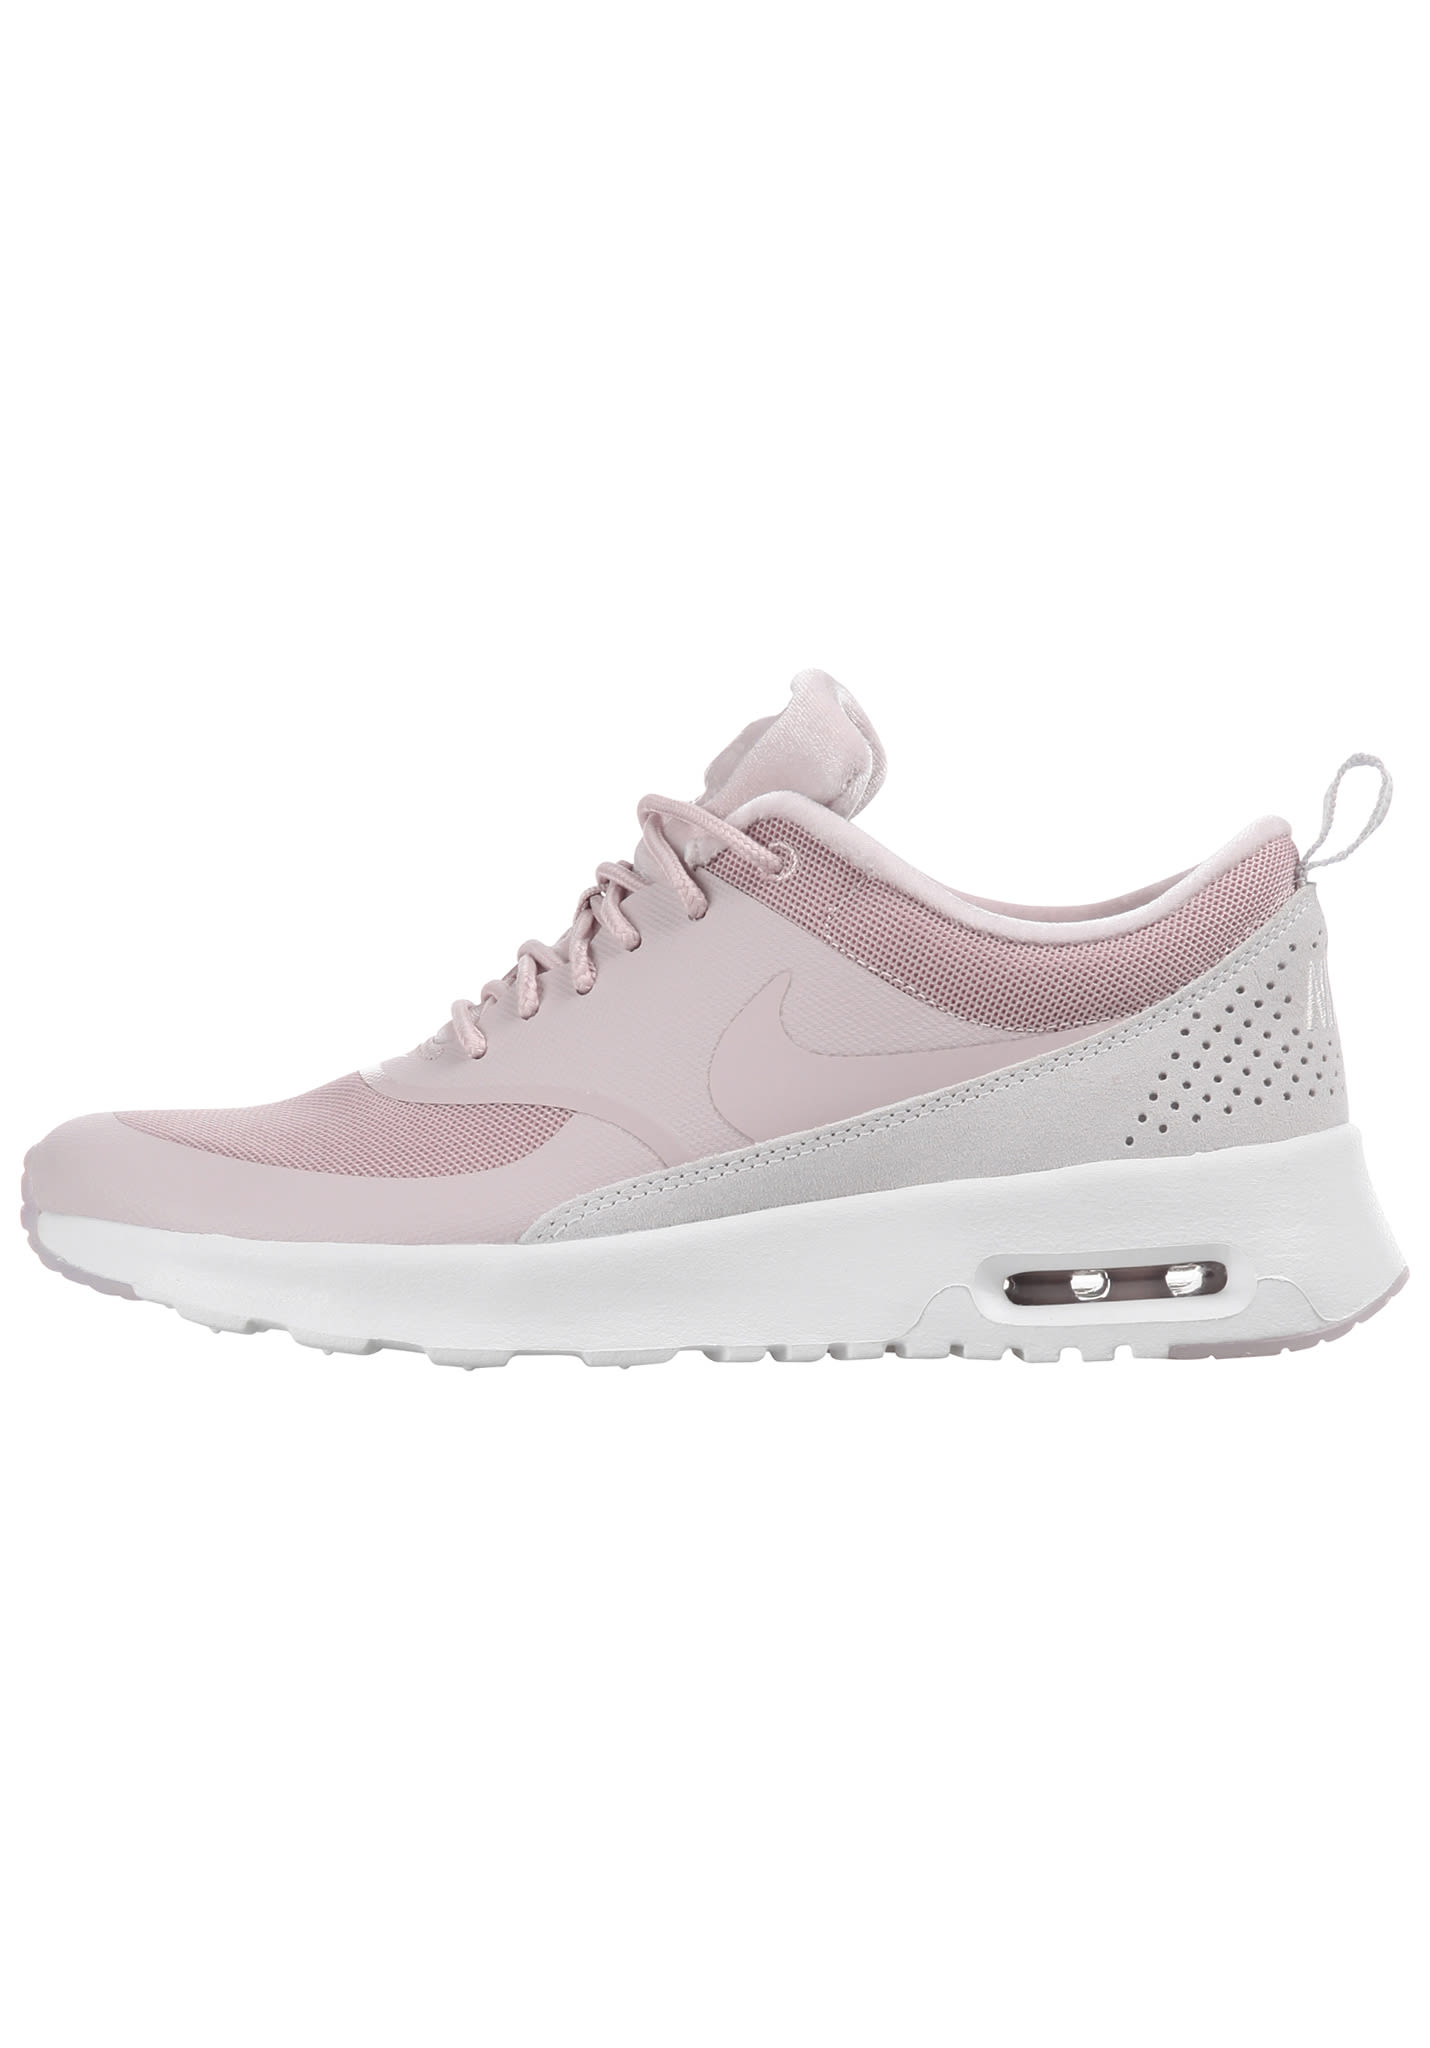 2eab5bc340a NIKE SPORTSWEAR Air Max Thea LX - Sneakers for Women - Pink - Planet Sports